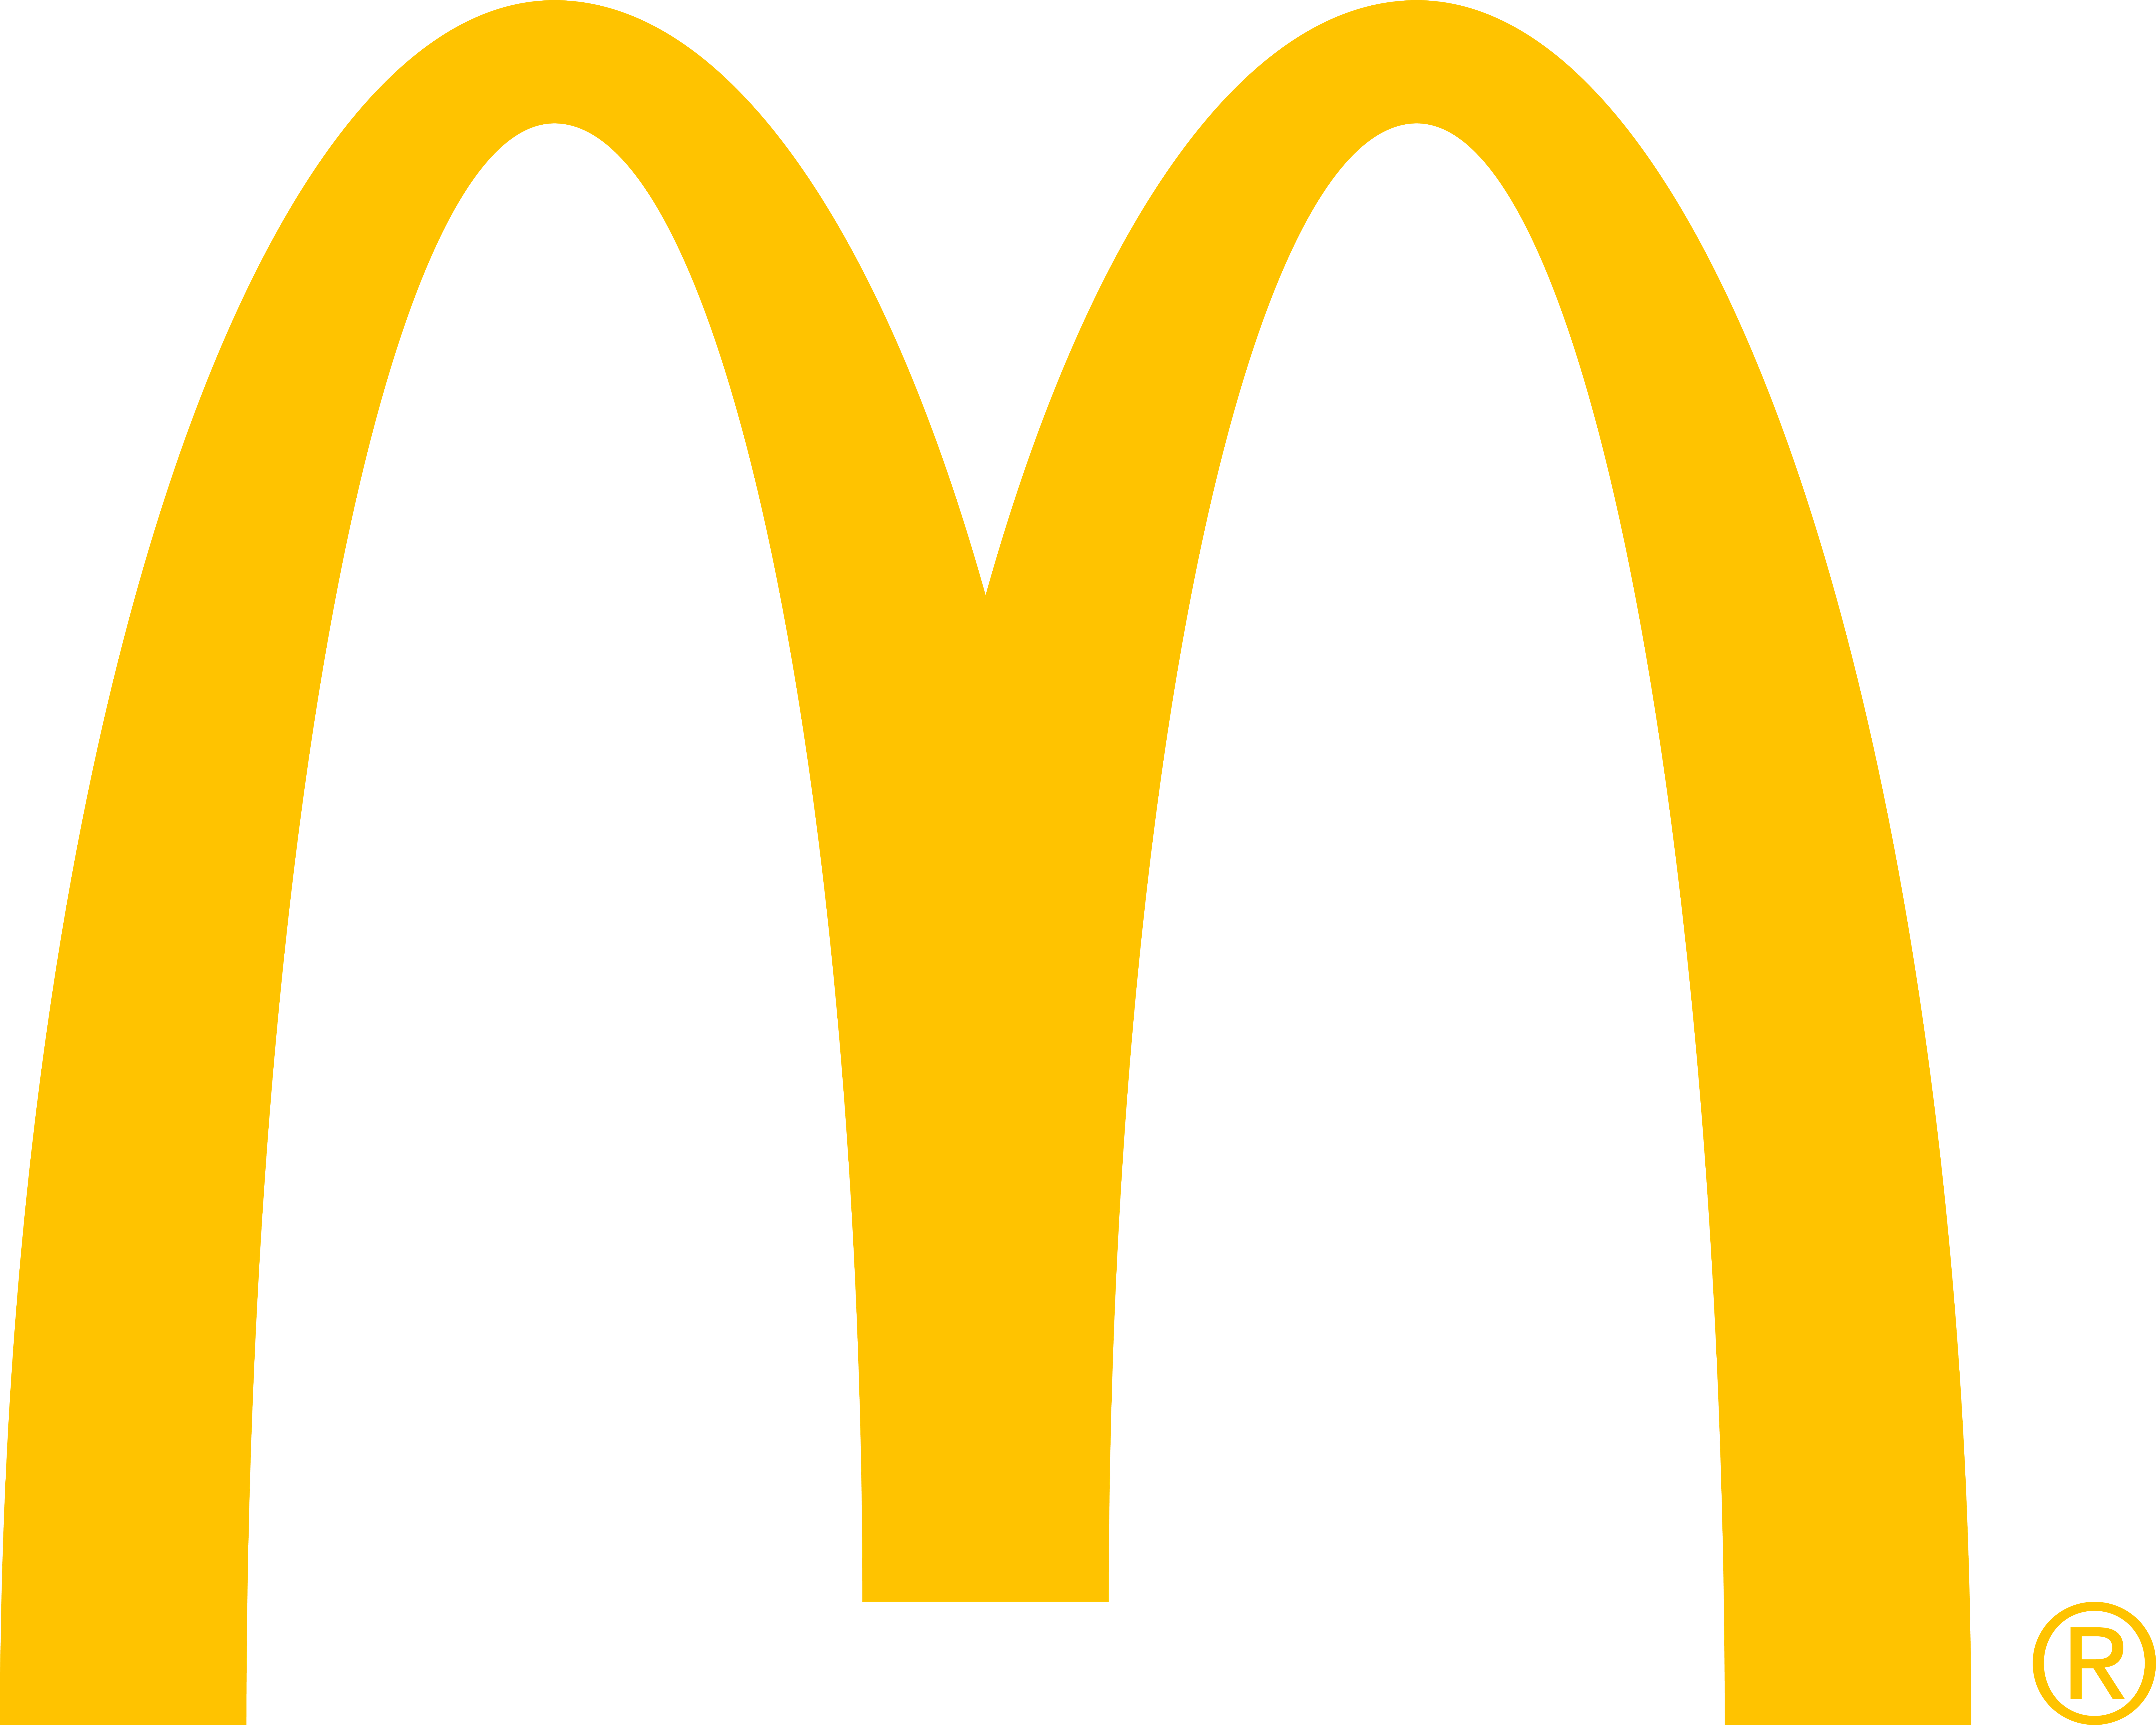 McDonalds logo transparent